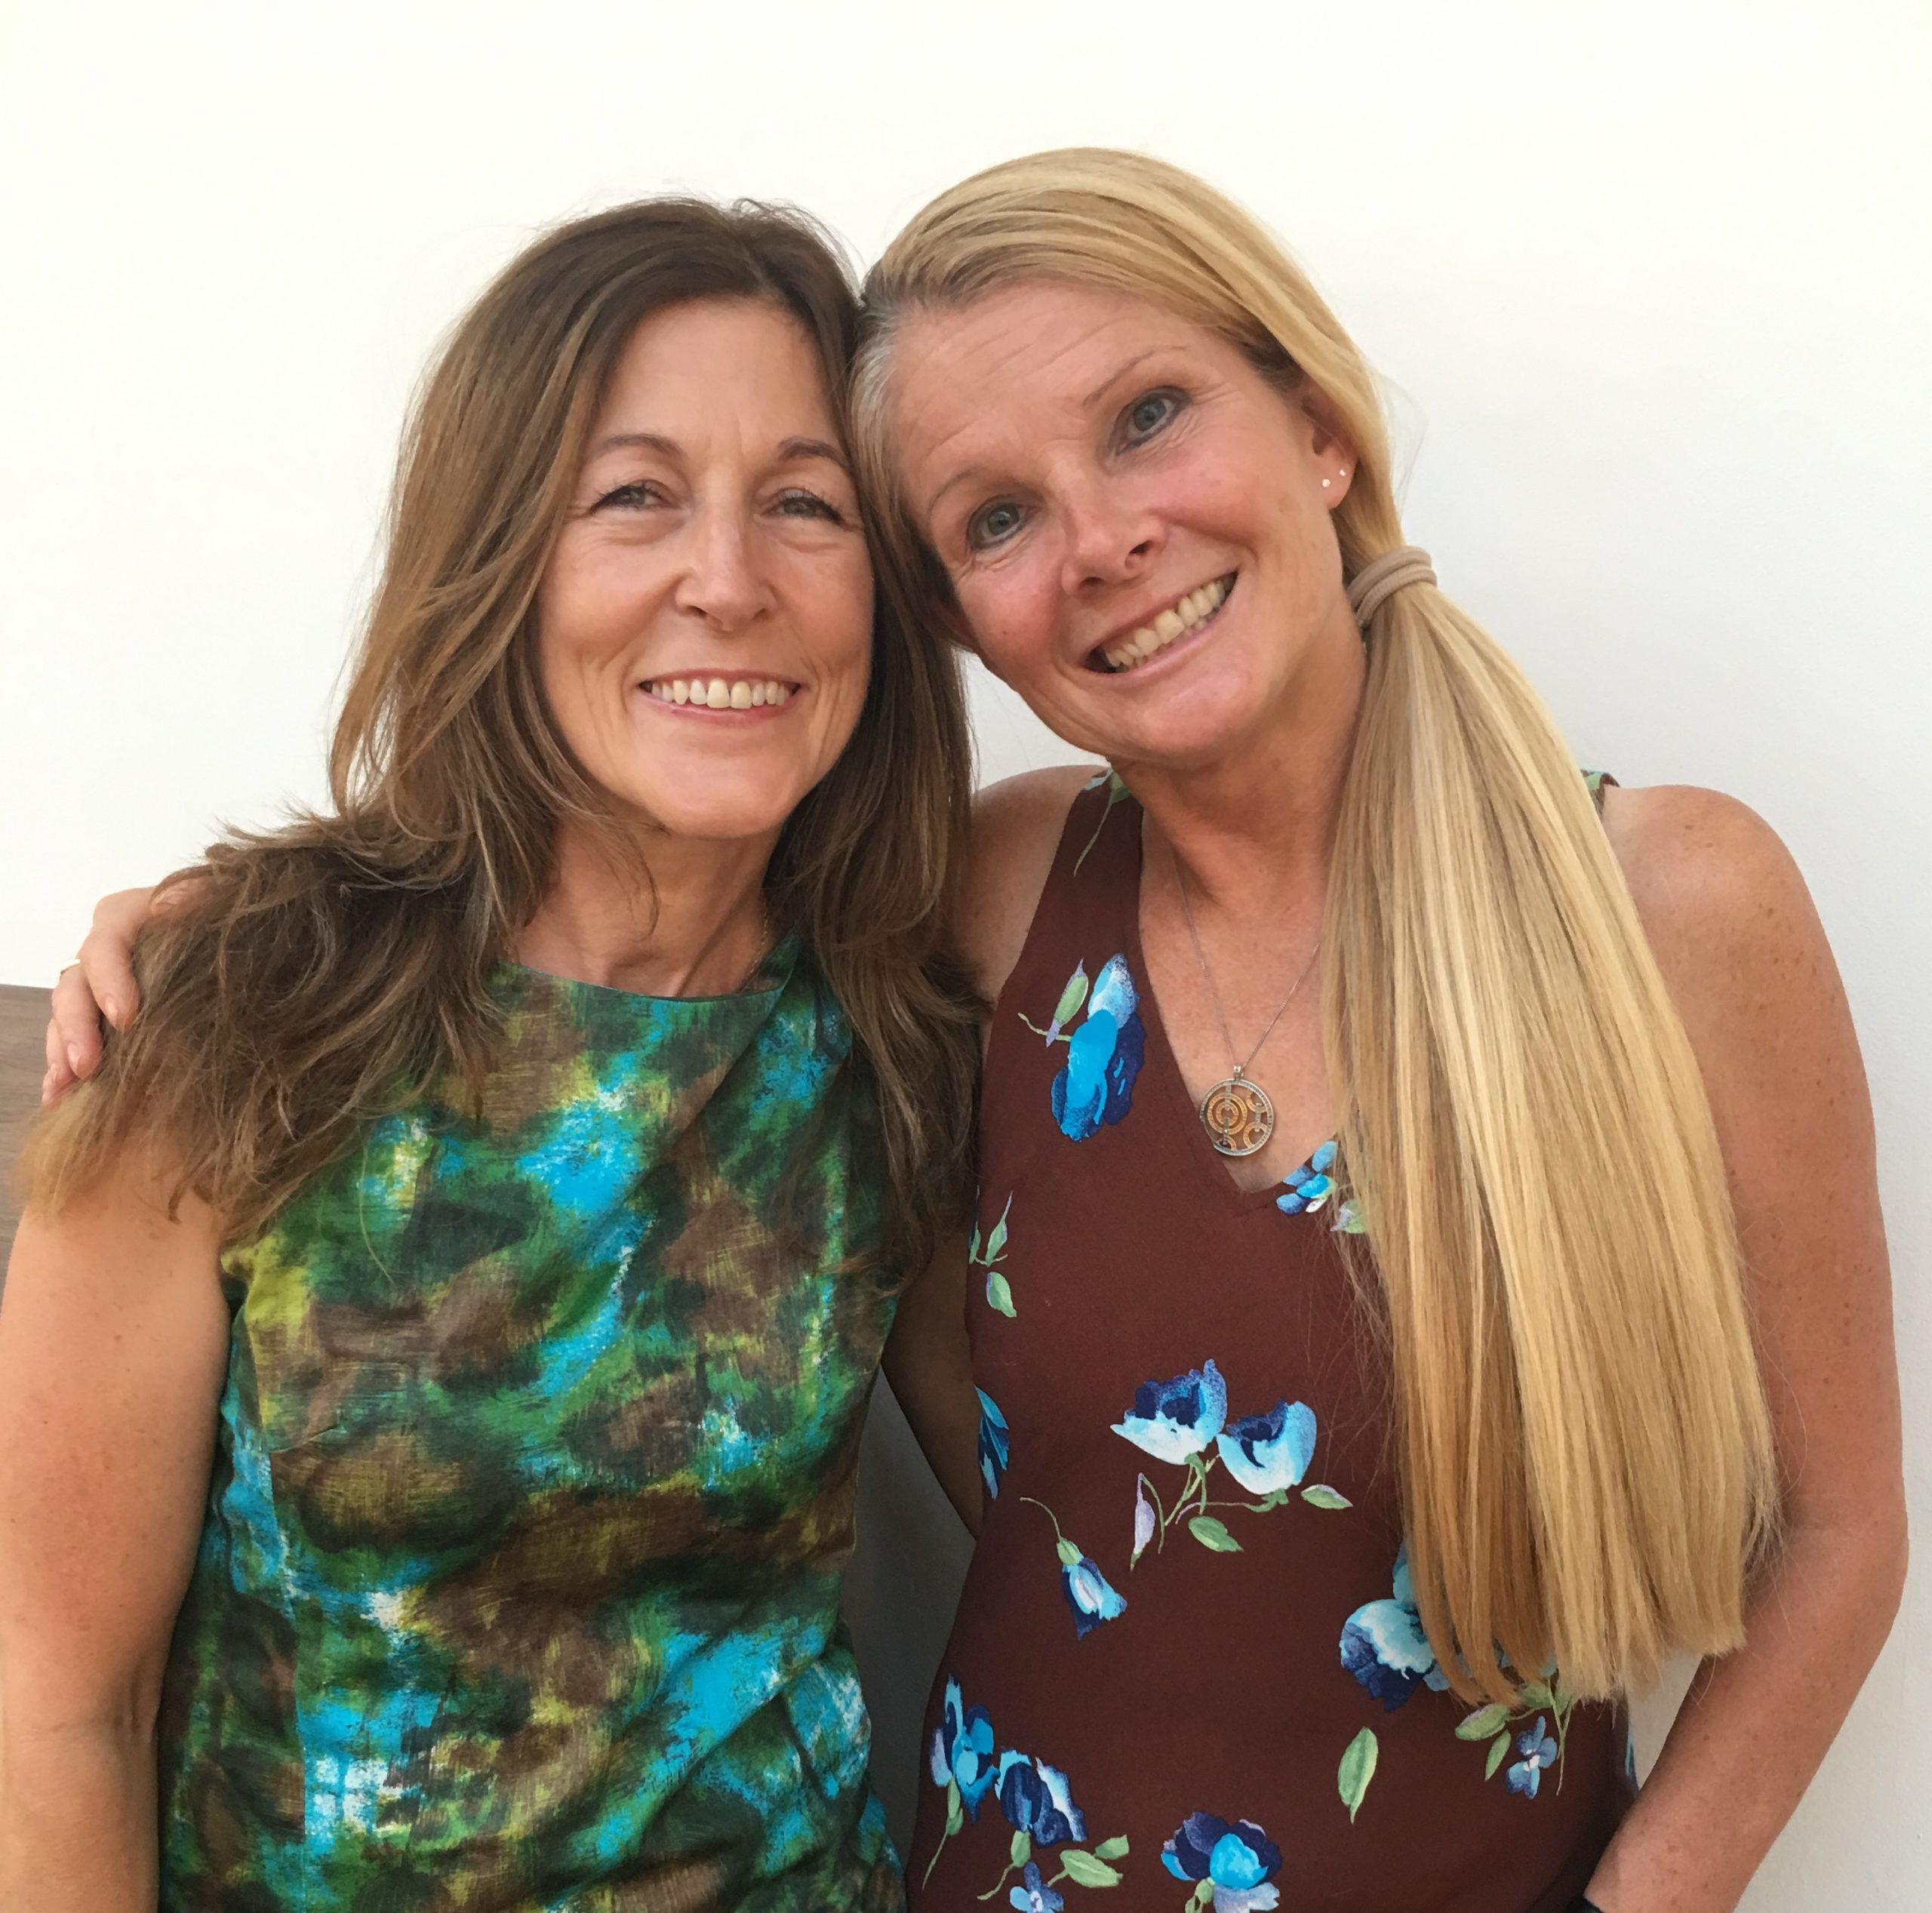 julie Wraight Jayne Dunsbee Be Naturally Co Founders health wellbeing nature